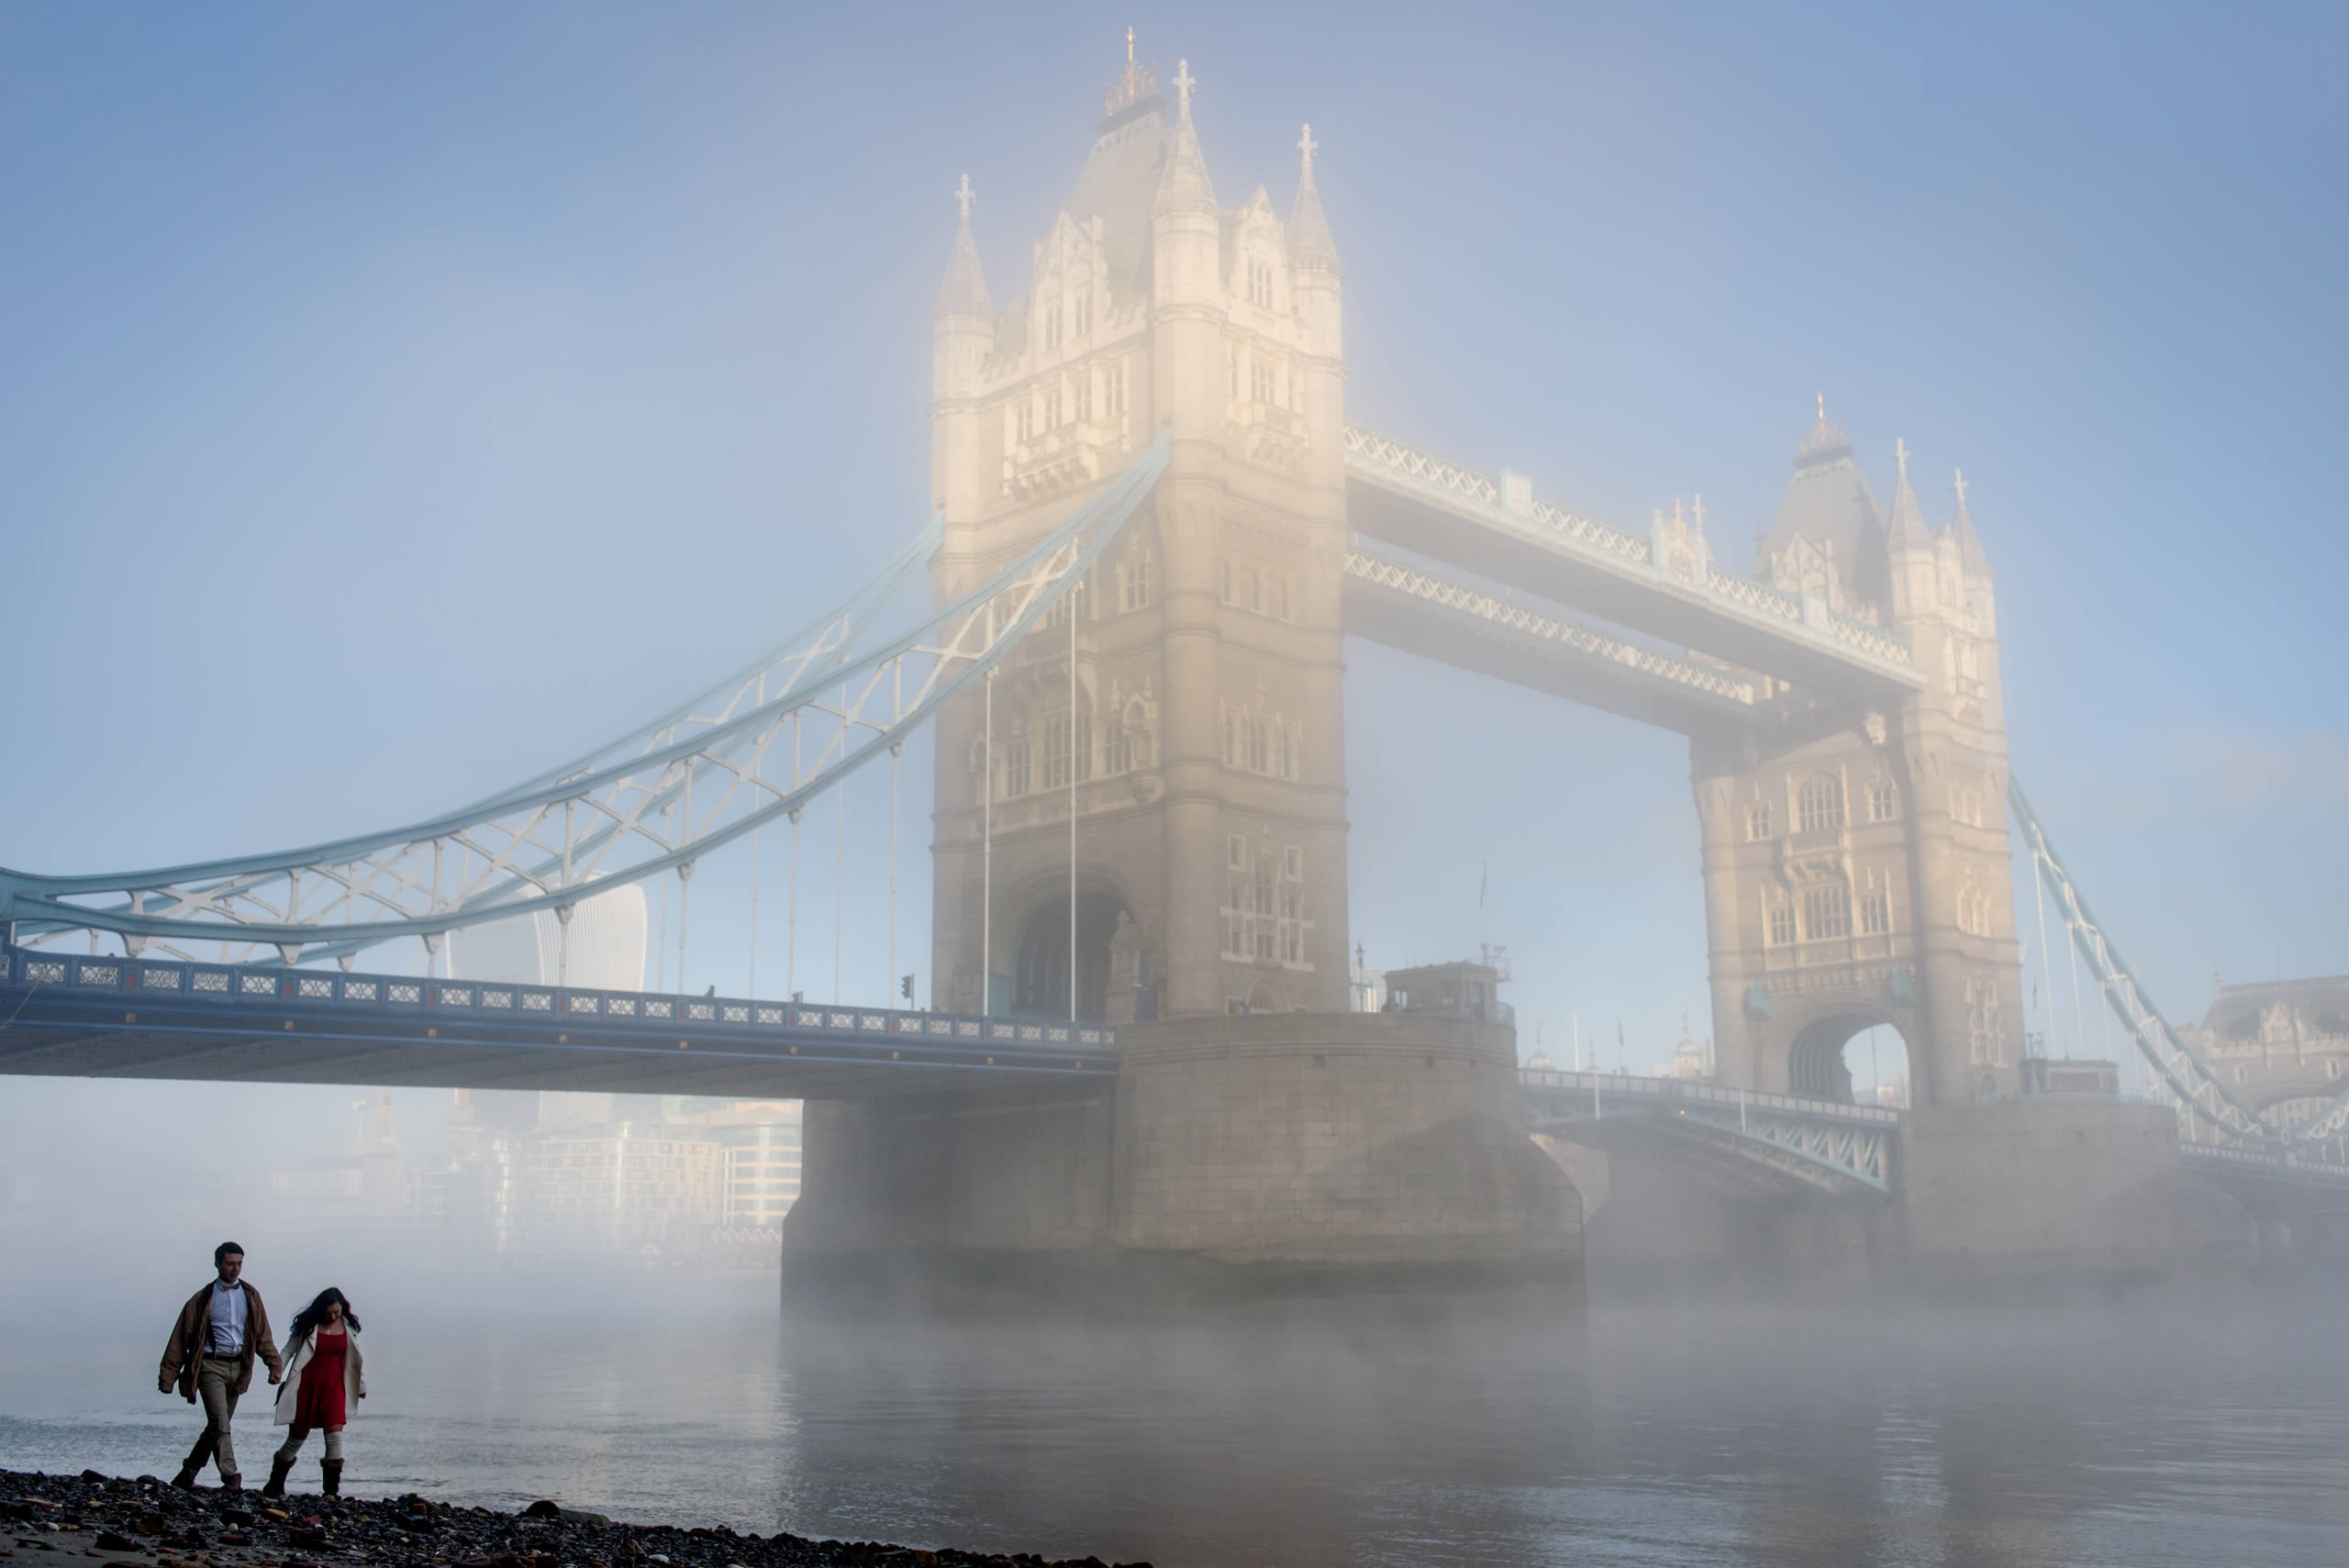 A couple walking along the bank of the Thames next to Tower bridge in the mist for their central London engagement photography shoot.